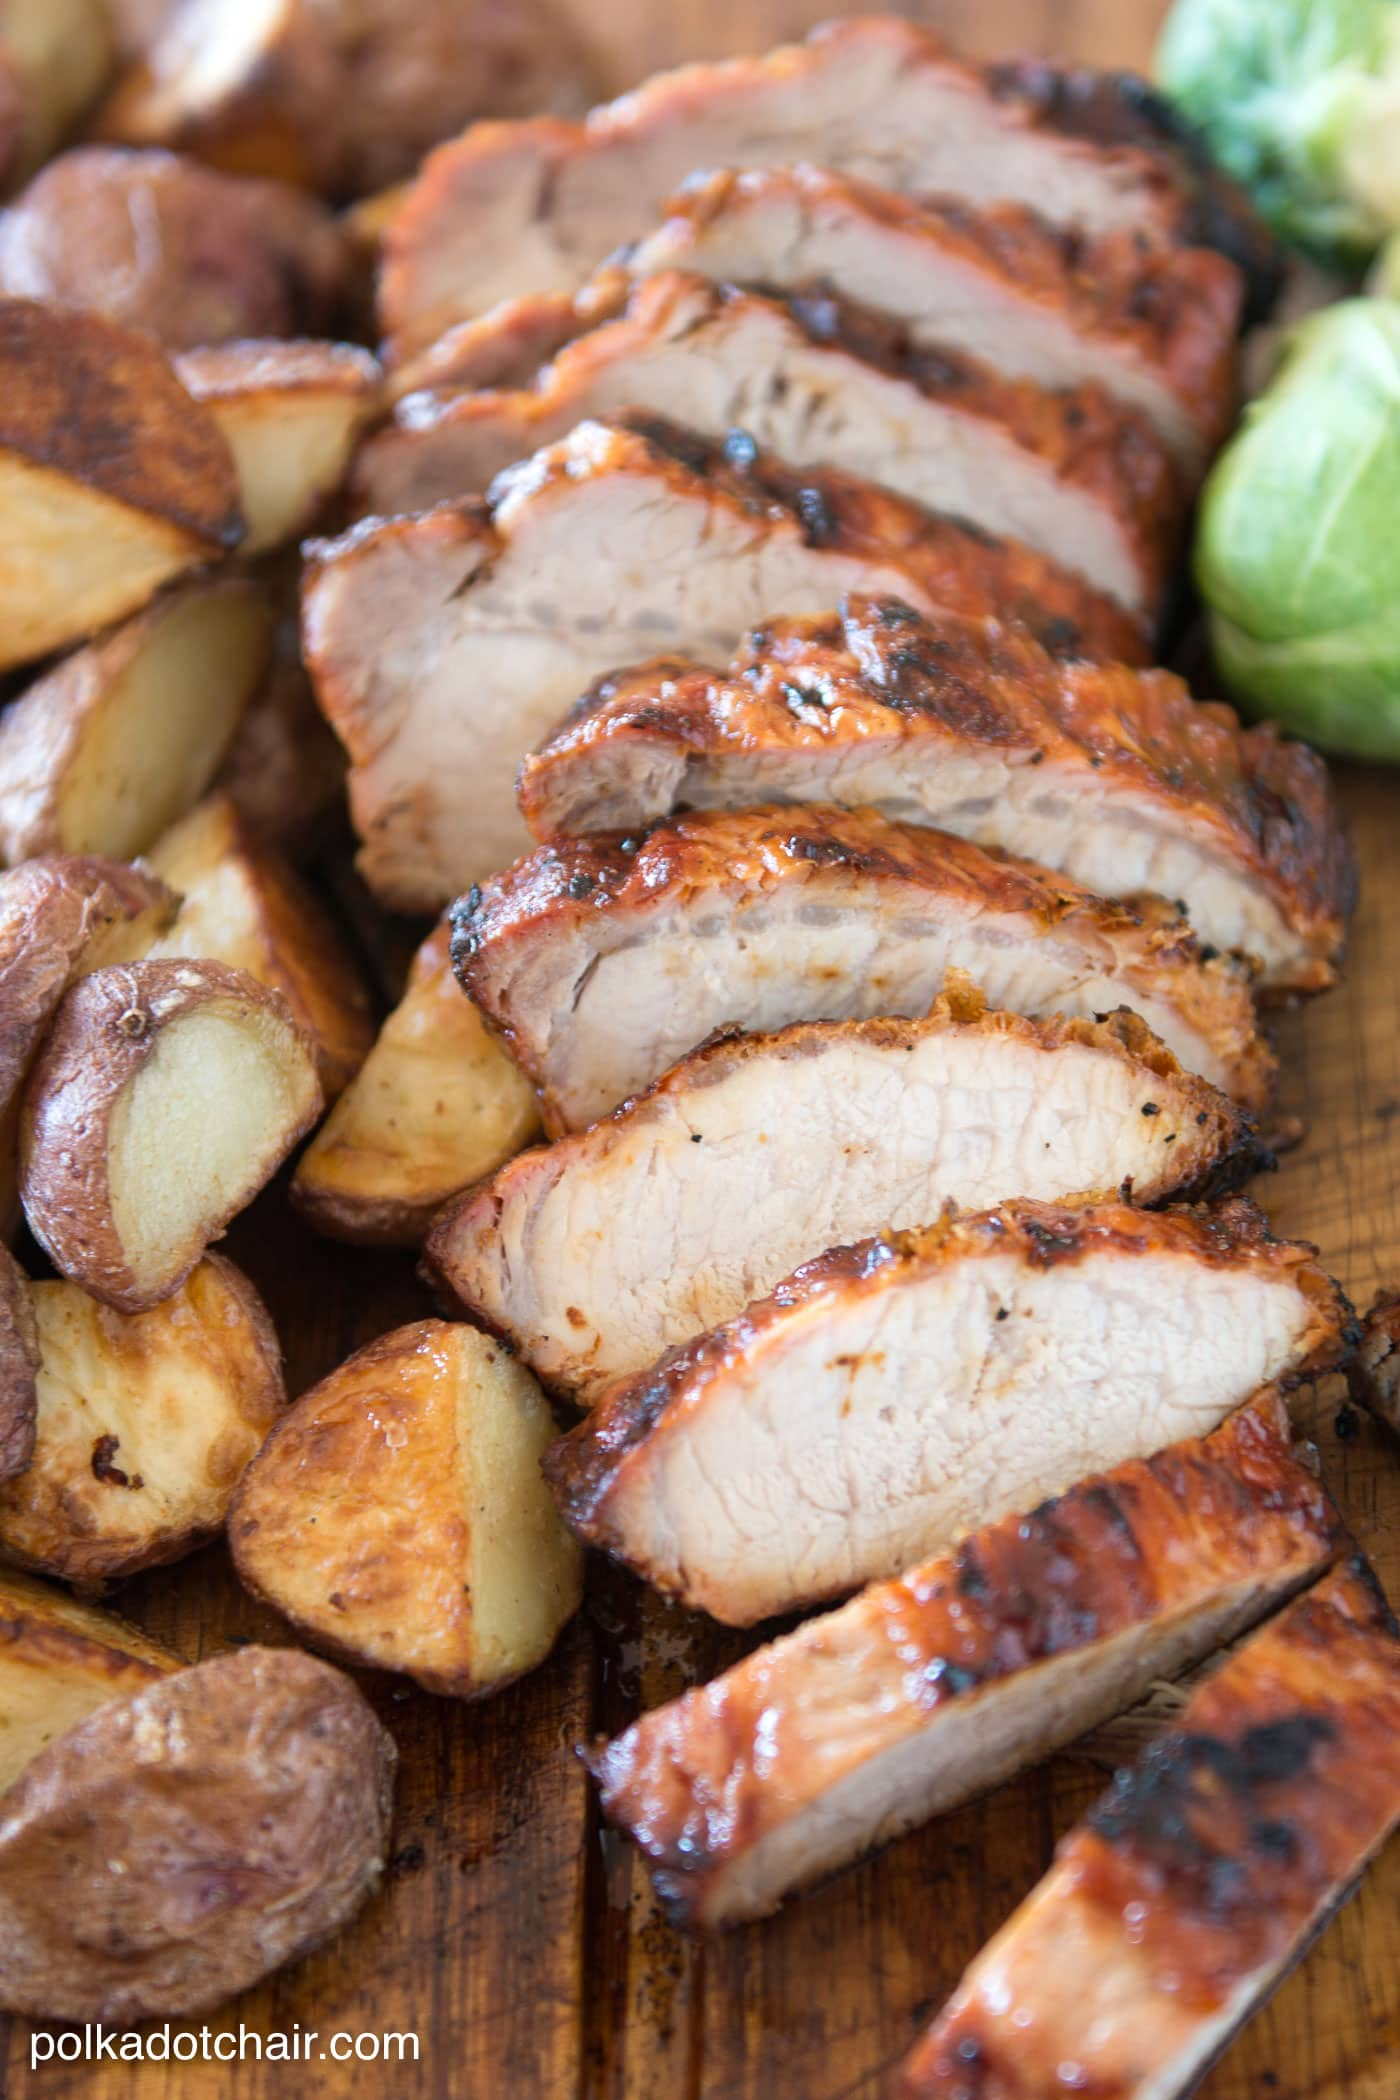 Recipe for Mesquite Grilled Pork Loin, great easy weeknight dinner idea, just cook it on the grill!